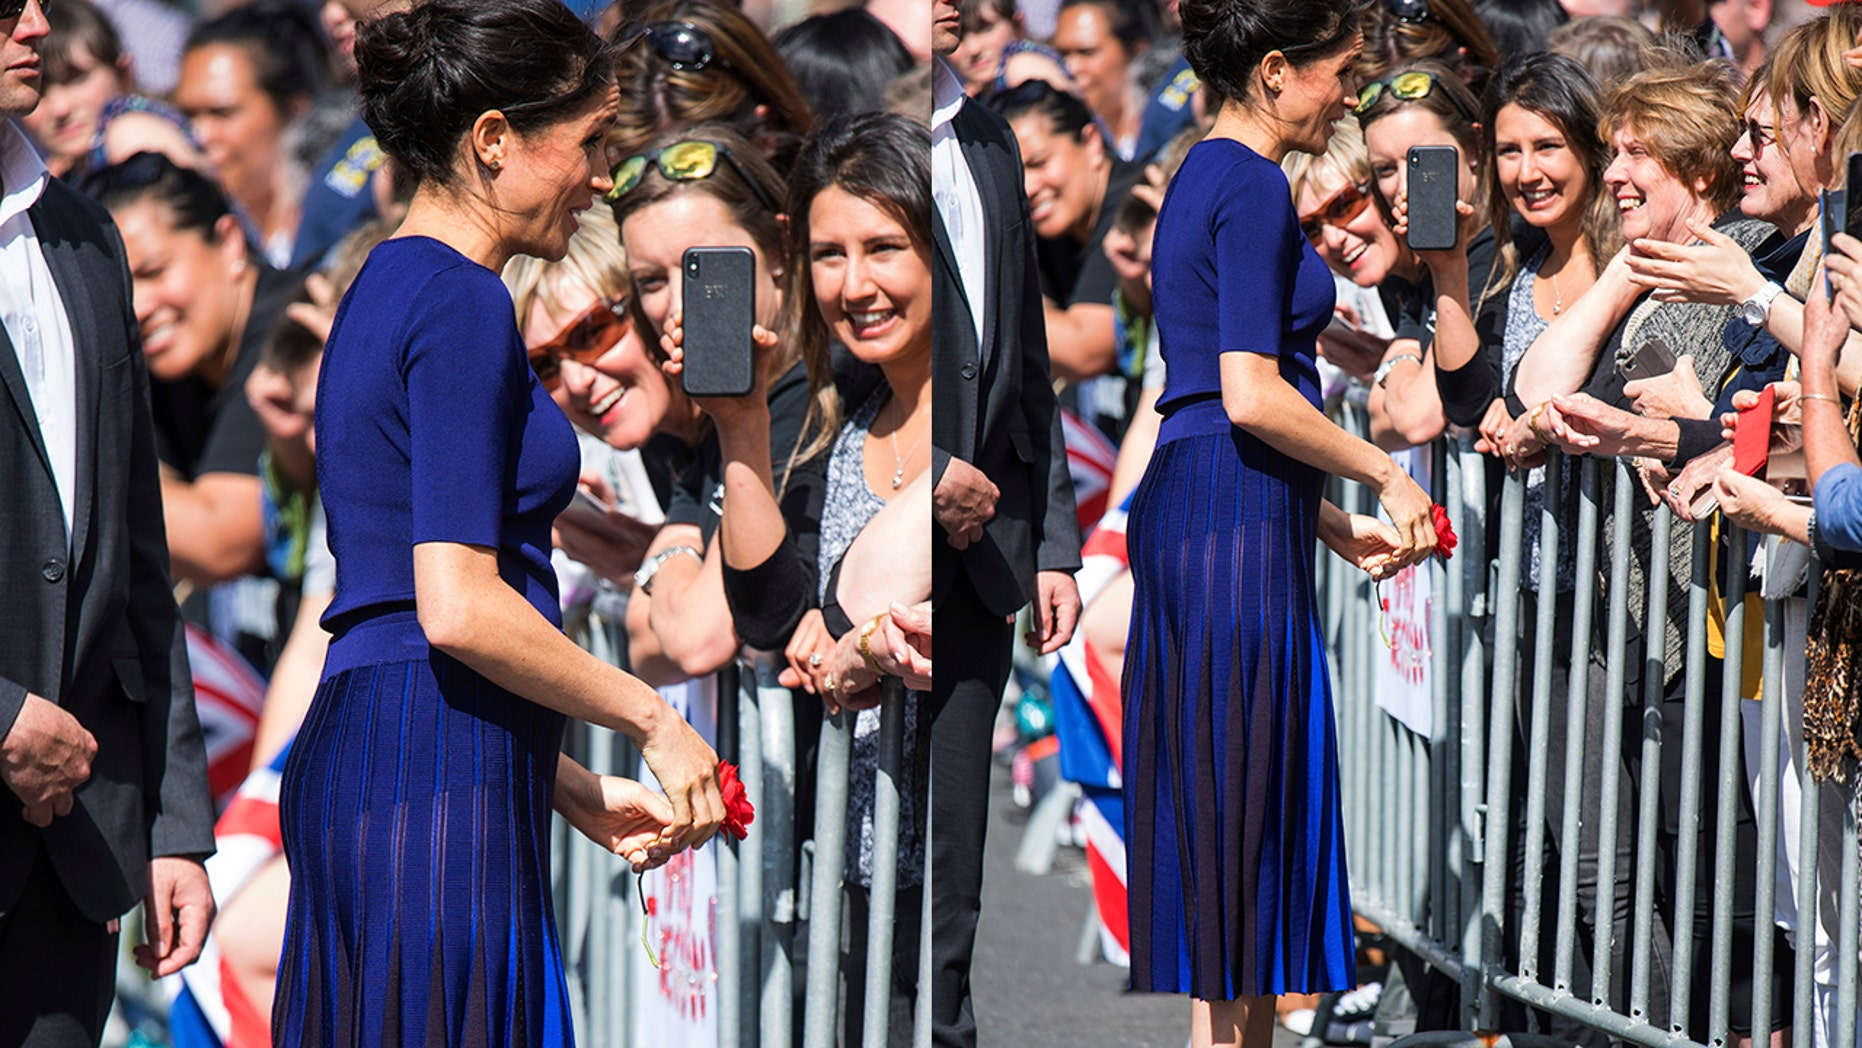 The Duchess of Sussex meets with members of the public during a walk through Rotorua, New Zealand, with a skirt revealed under the garment.